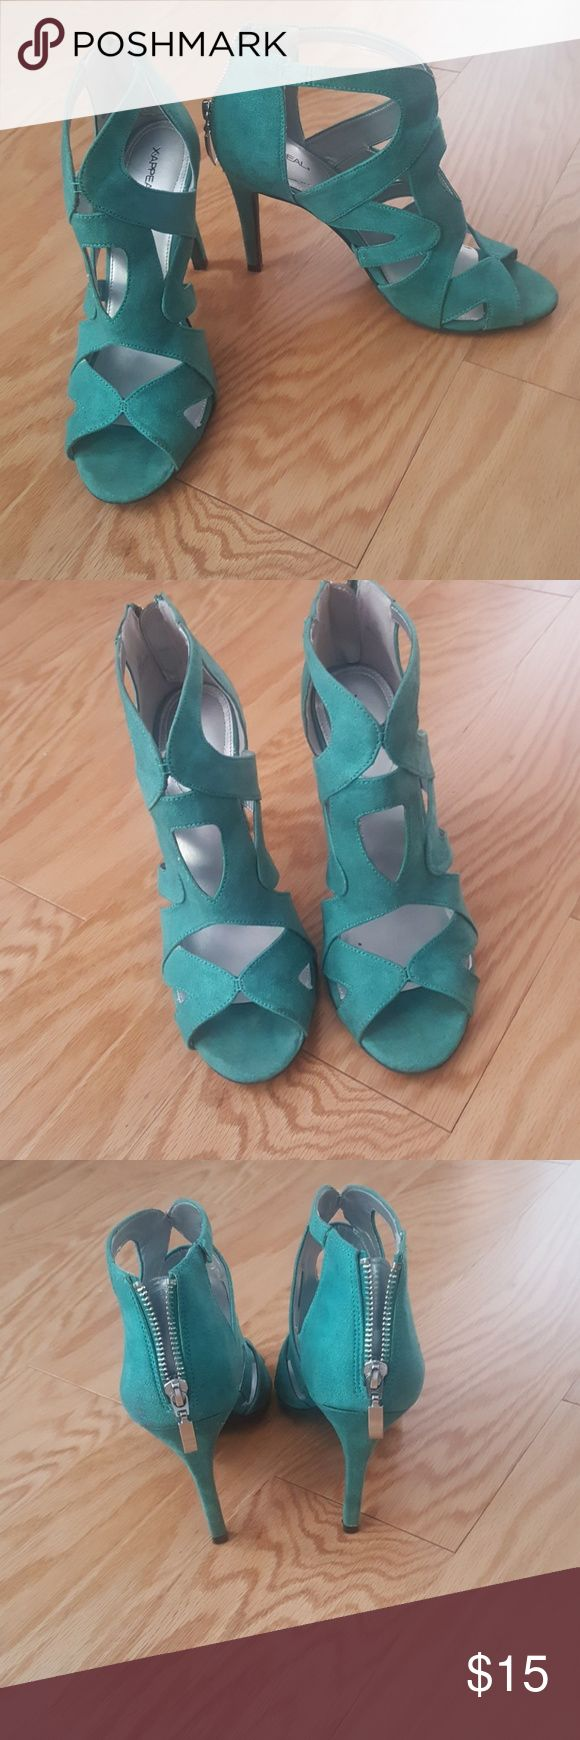 X.Appeal Teal Women's Suede Caged Heels A caged heel in a soft suede is a must have this spring. This as classic as it is versatile with its walkable heel. Adds a pop of color to any outfit X-Appeal Shoes Heels